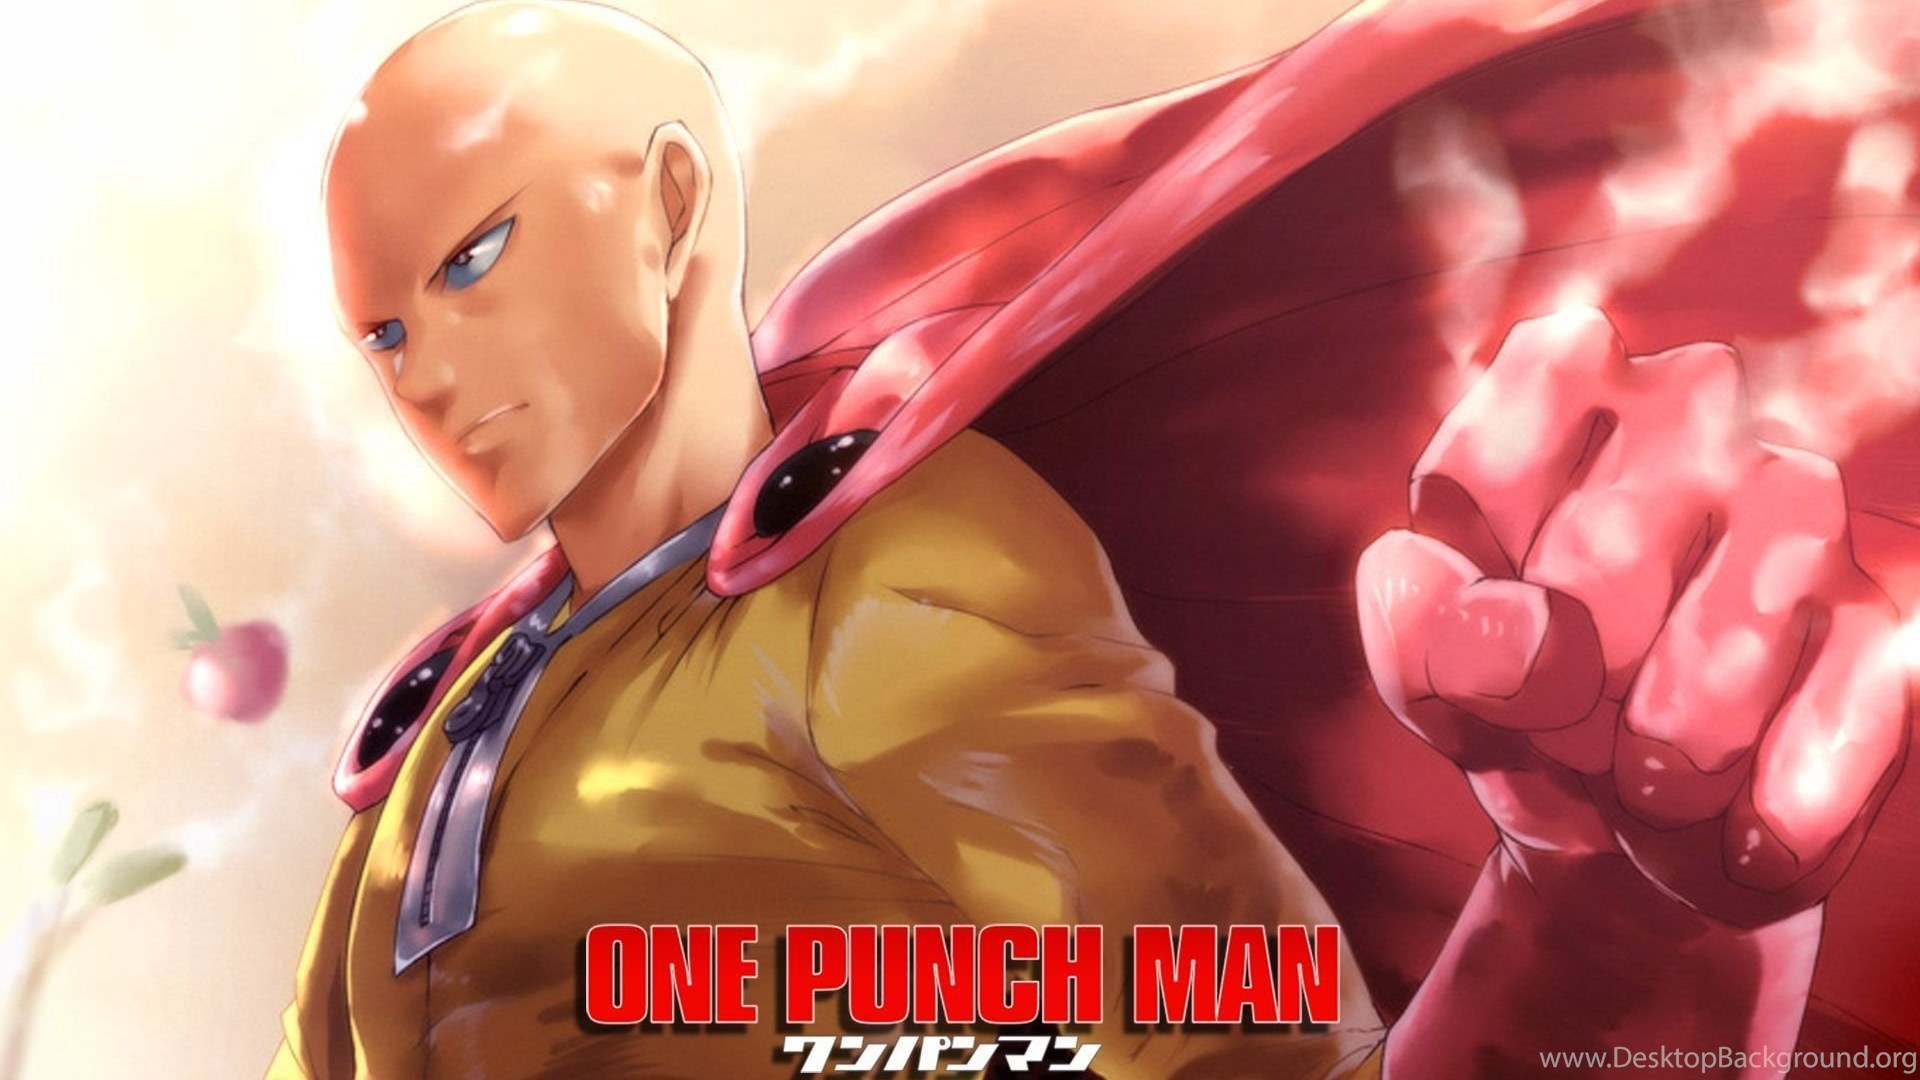 One Punch Man Wallpapers Hd Download Desktop Background